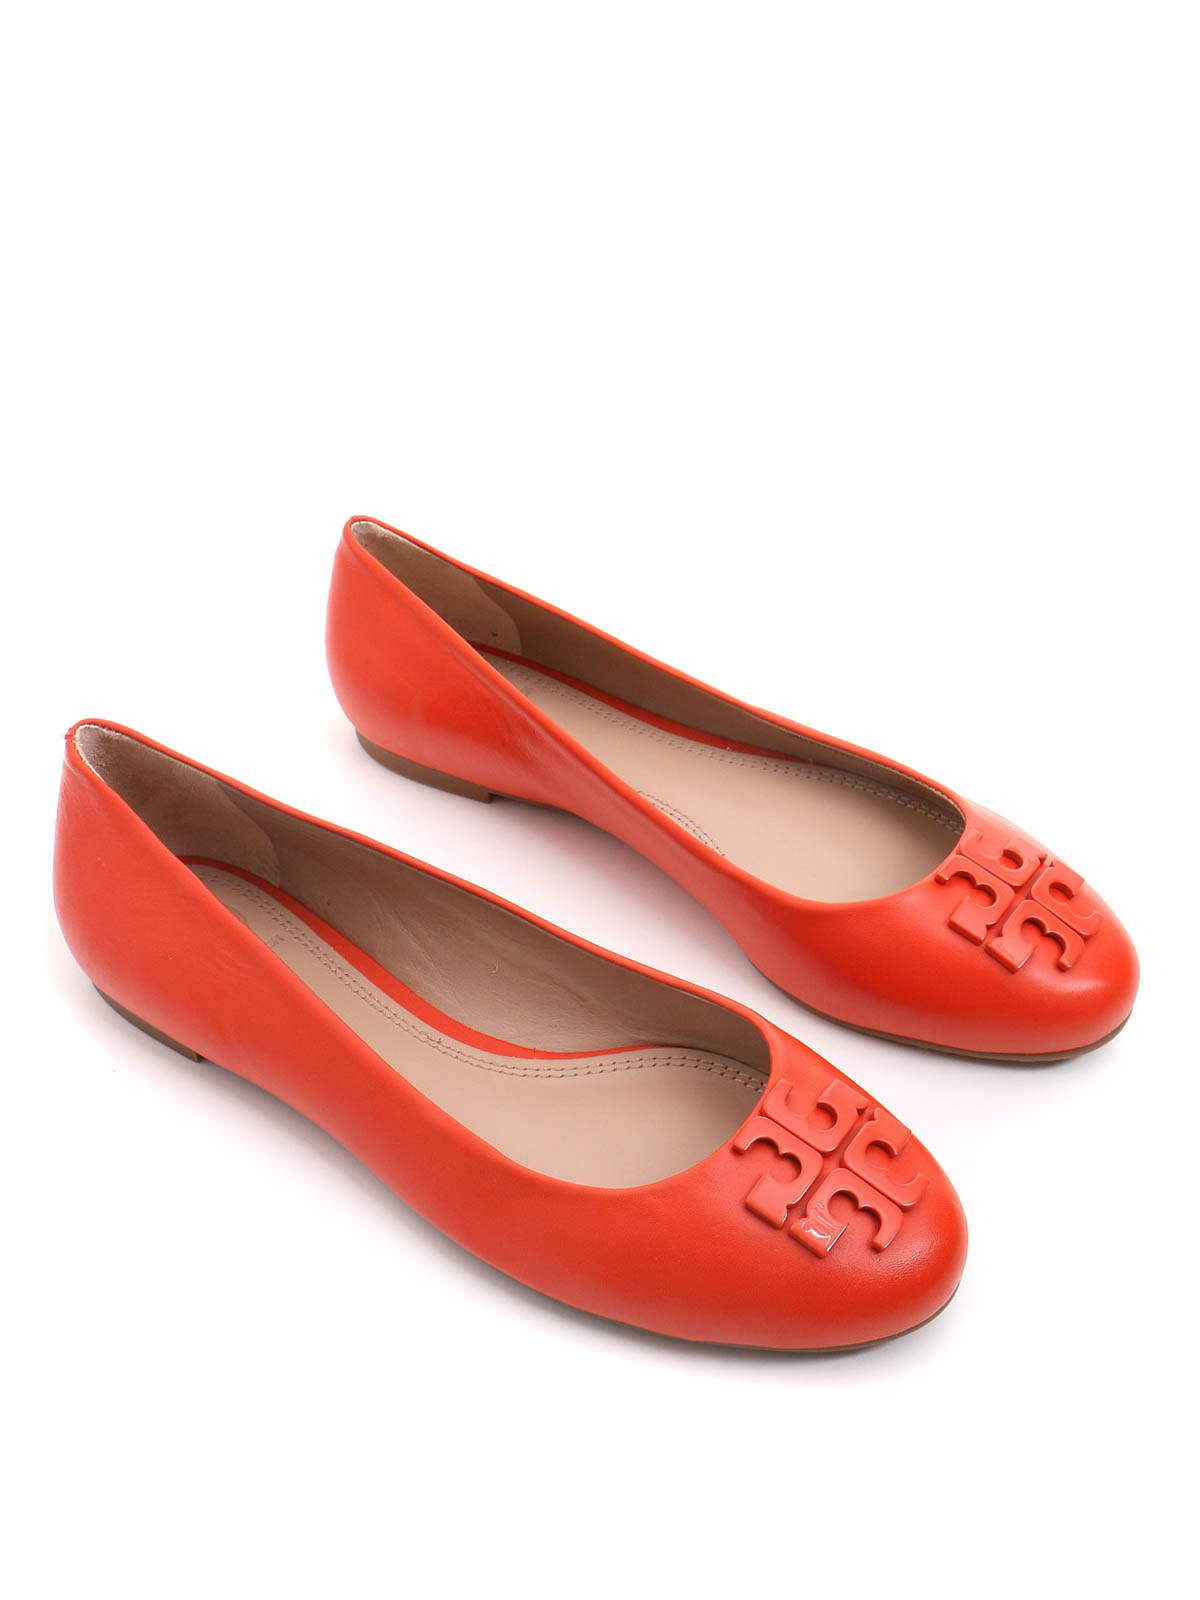 9f9837543 ... authentic tory burch flat shoes leather ballet flats 1e83c bd5ac